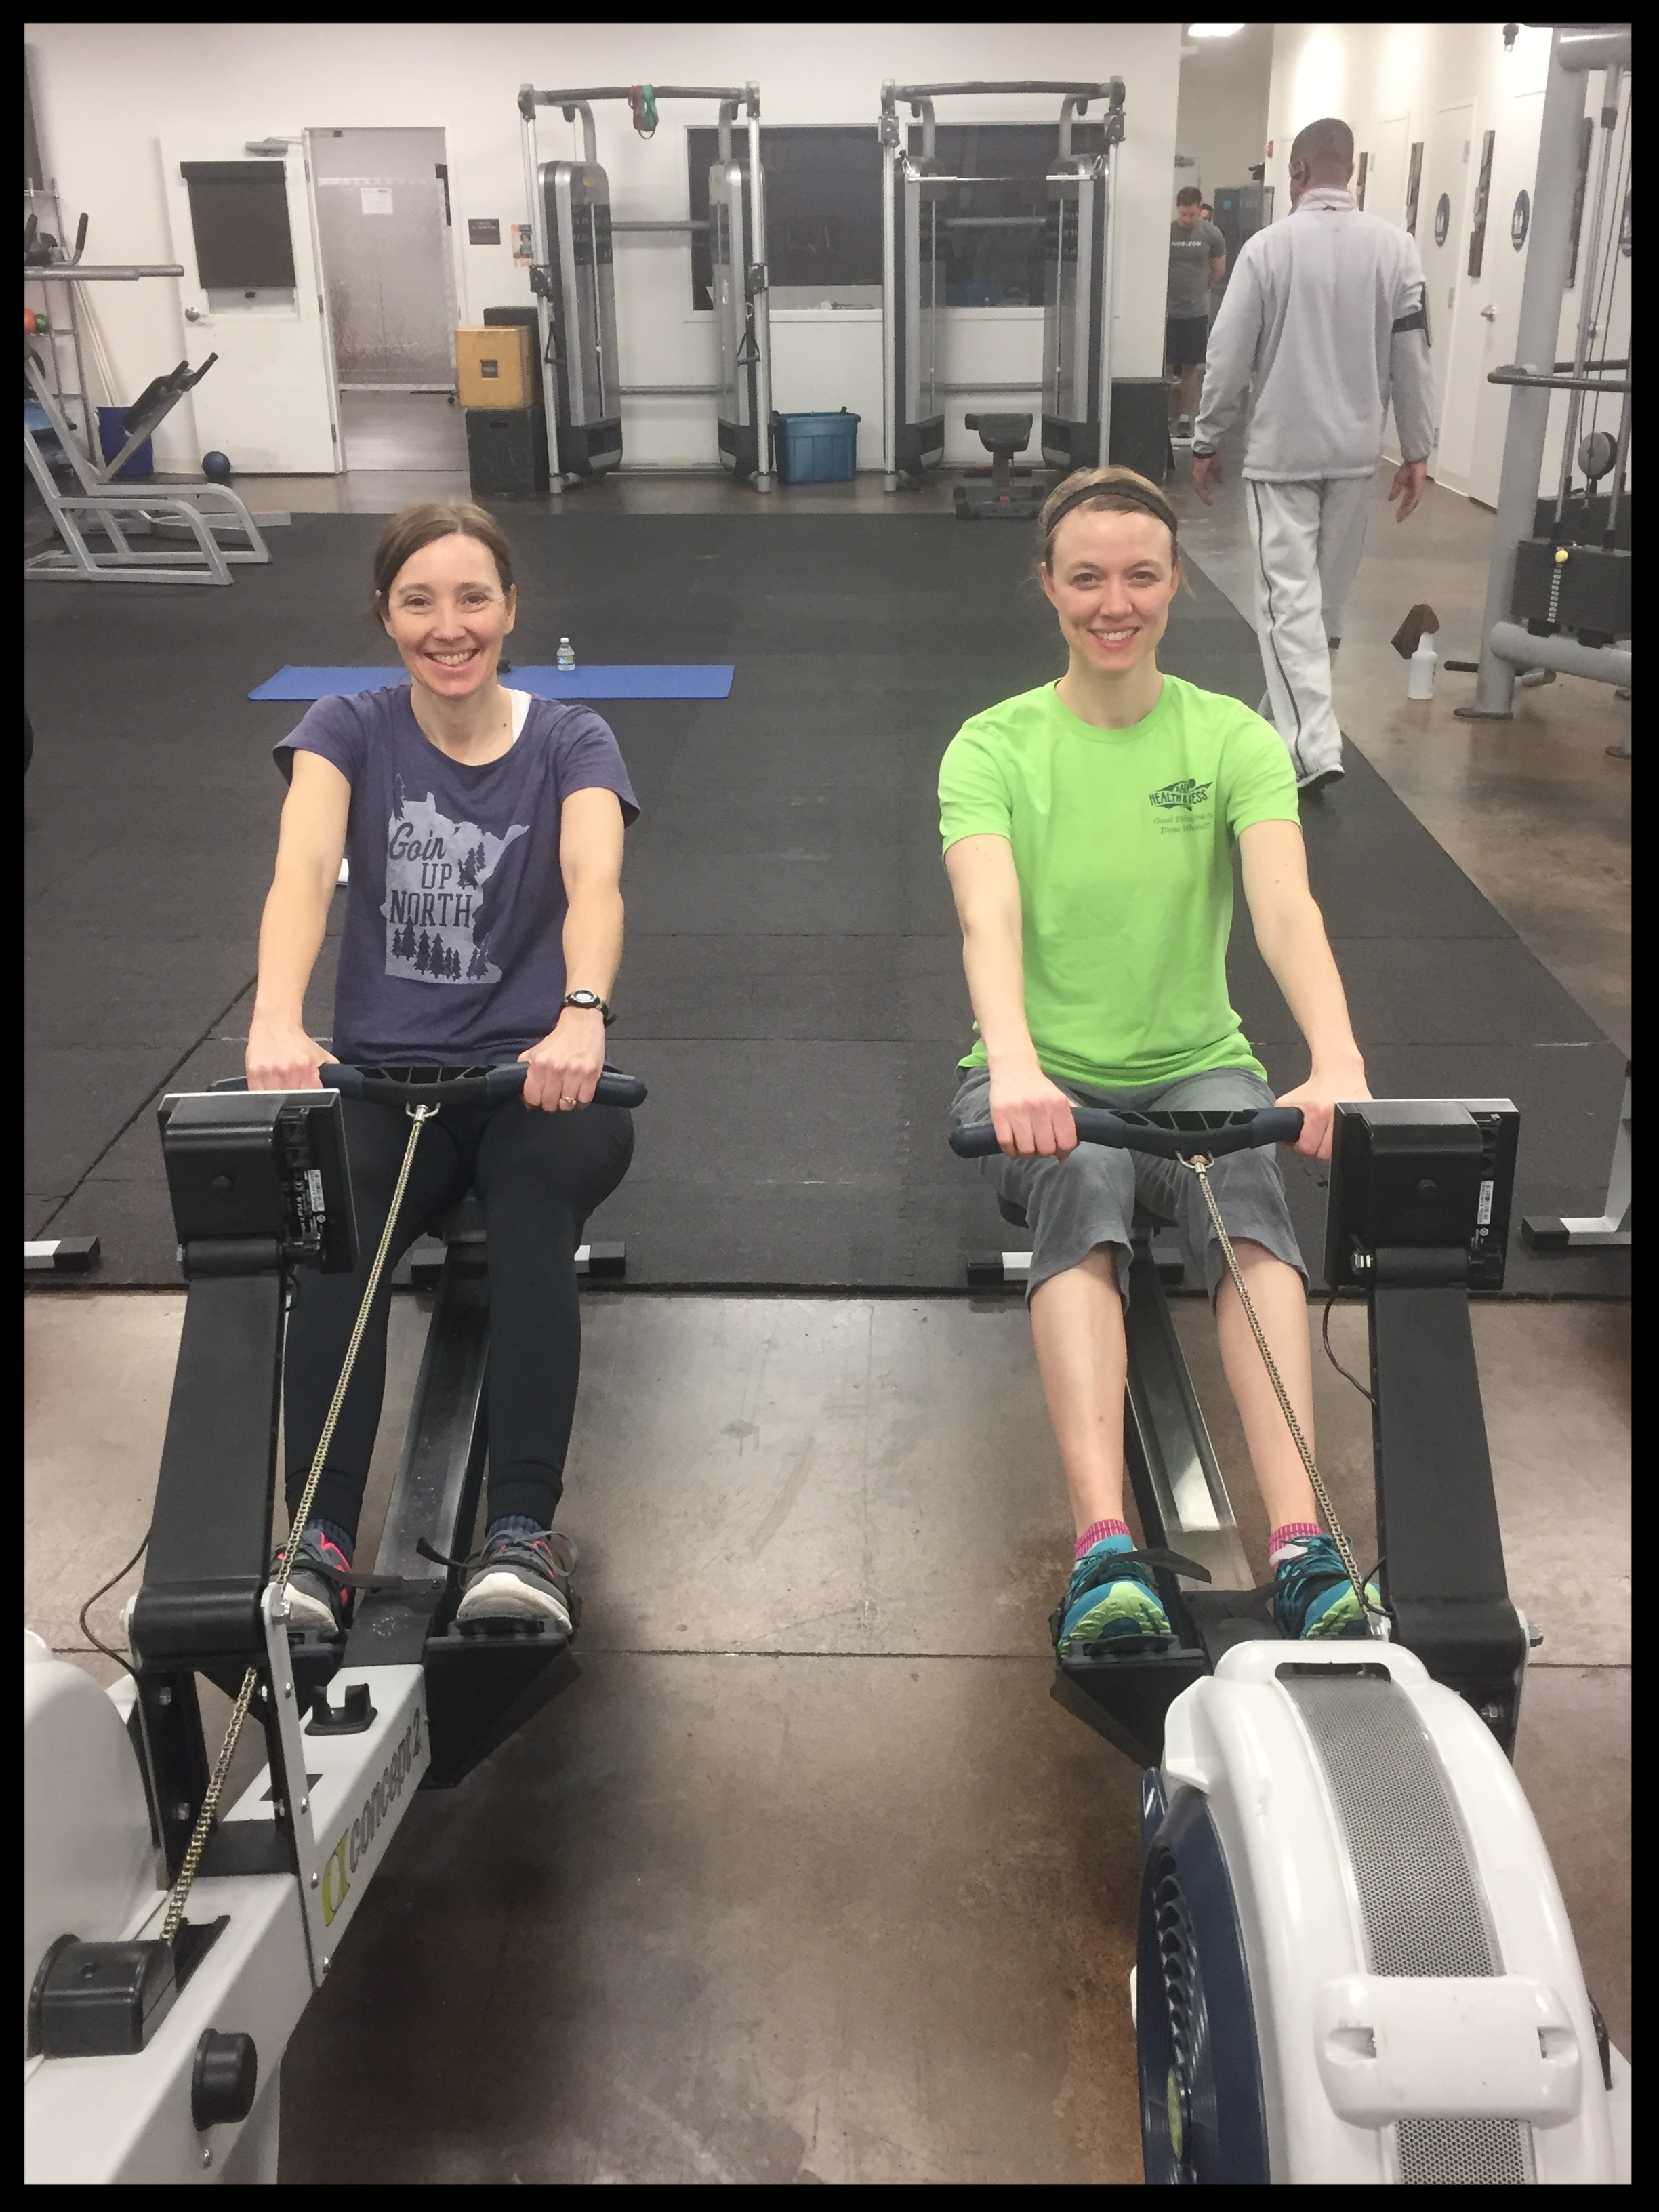 Rowing with team mate Debbie